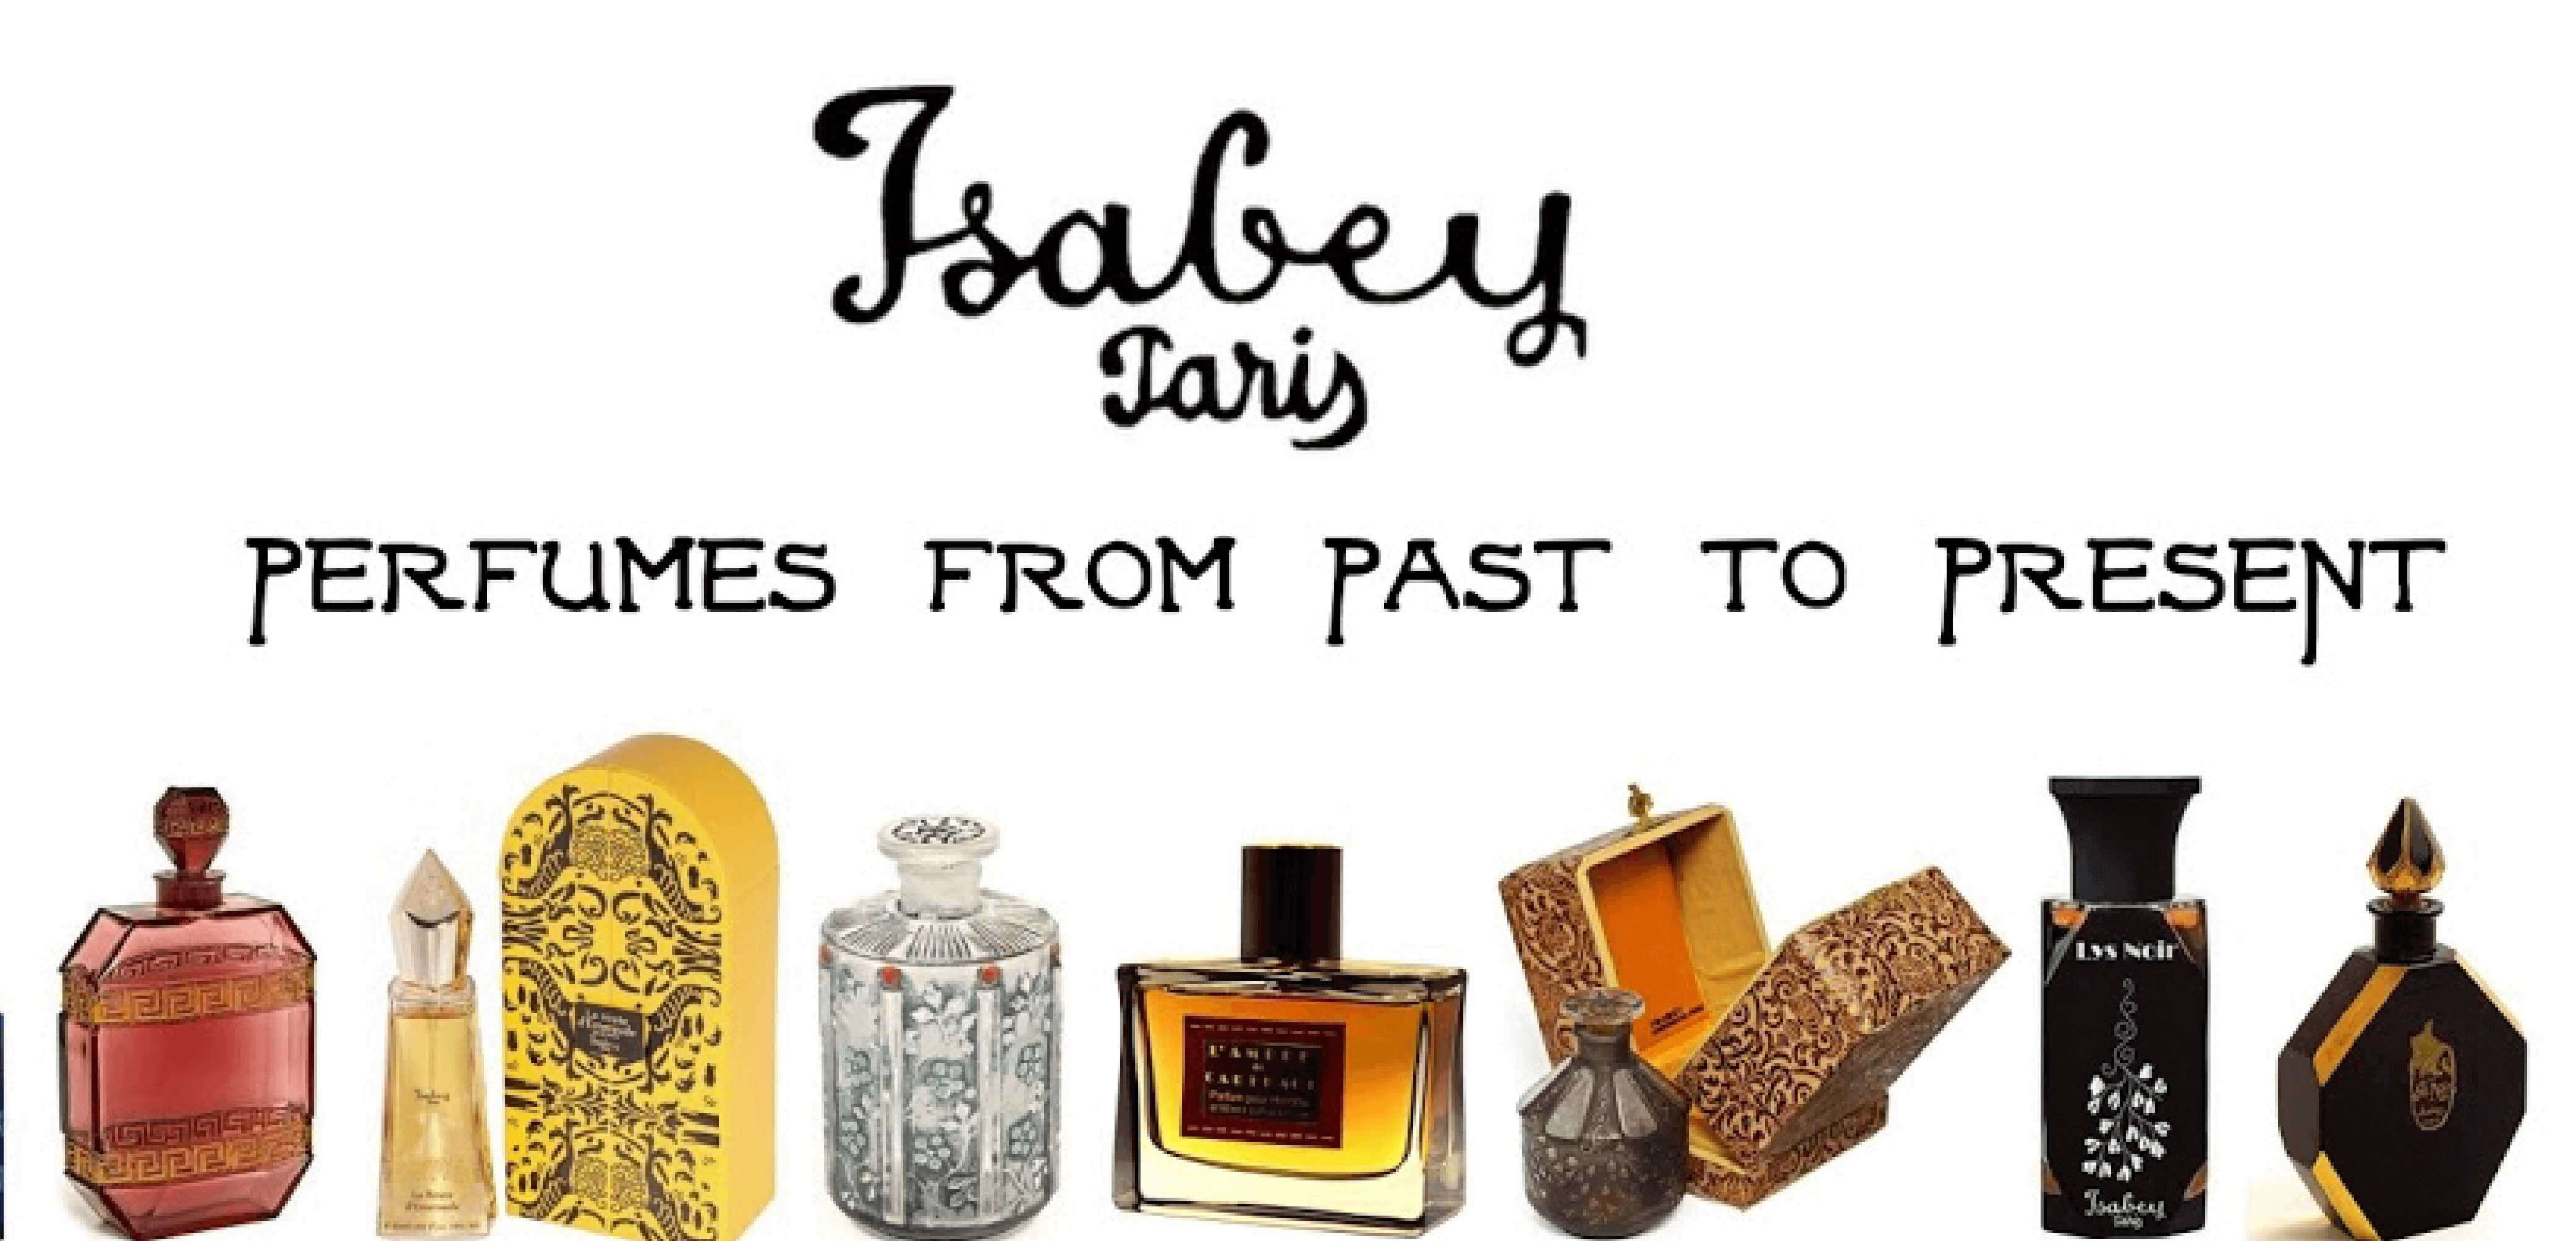 Isabey Paris